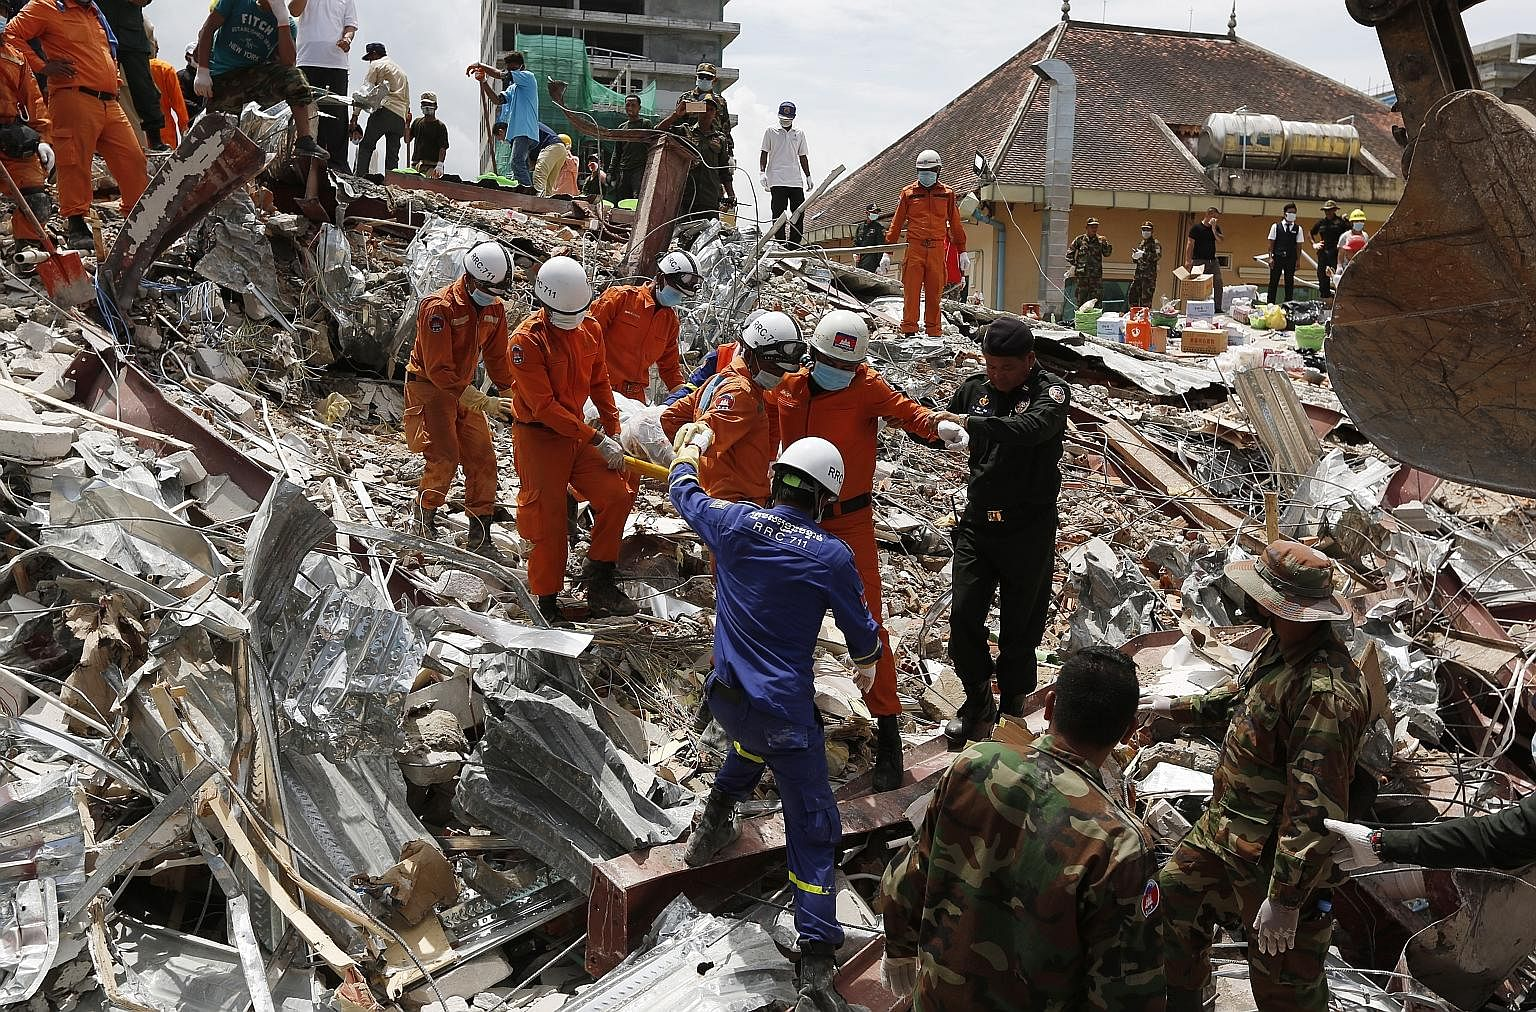 A Cambodian rescue team carrying the body of a worker who was killed at the site of a collapsed building in the coastal town of Sihanoukville. At least 1,000 rescue workers, soldiers, police, medics and Chinese construction experts have been deployed